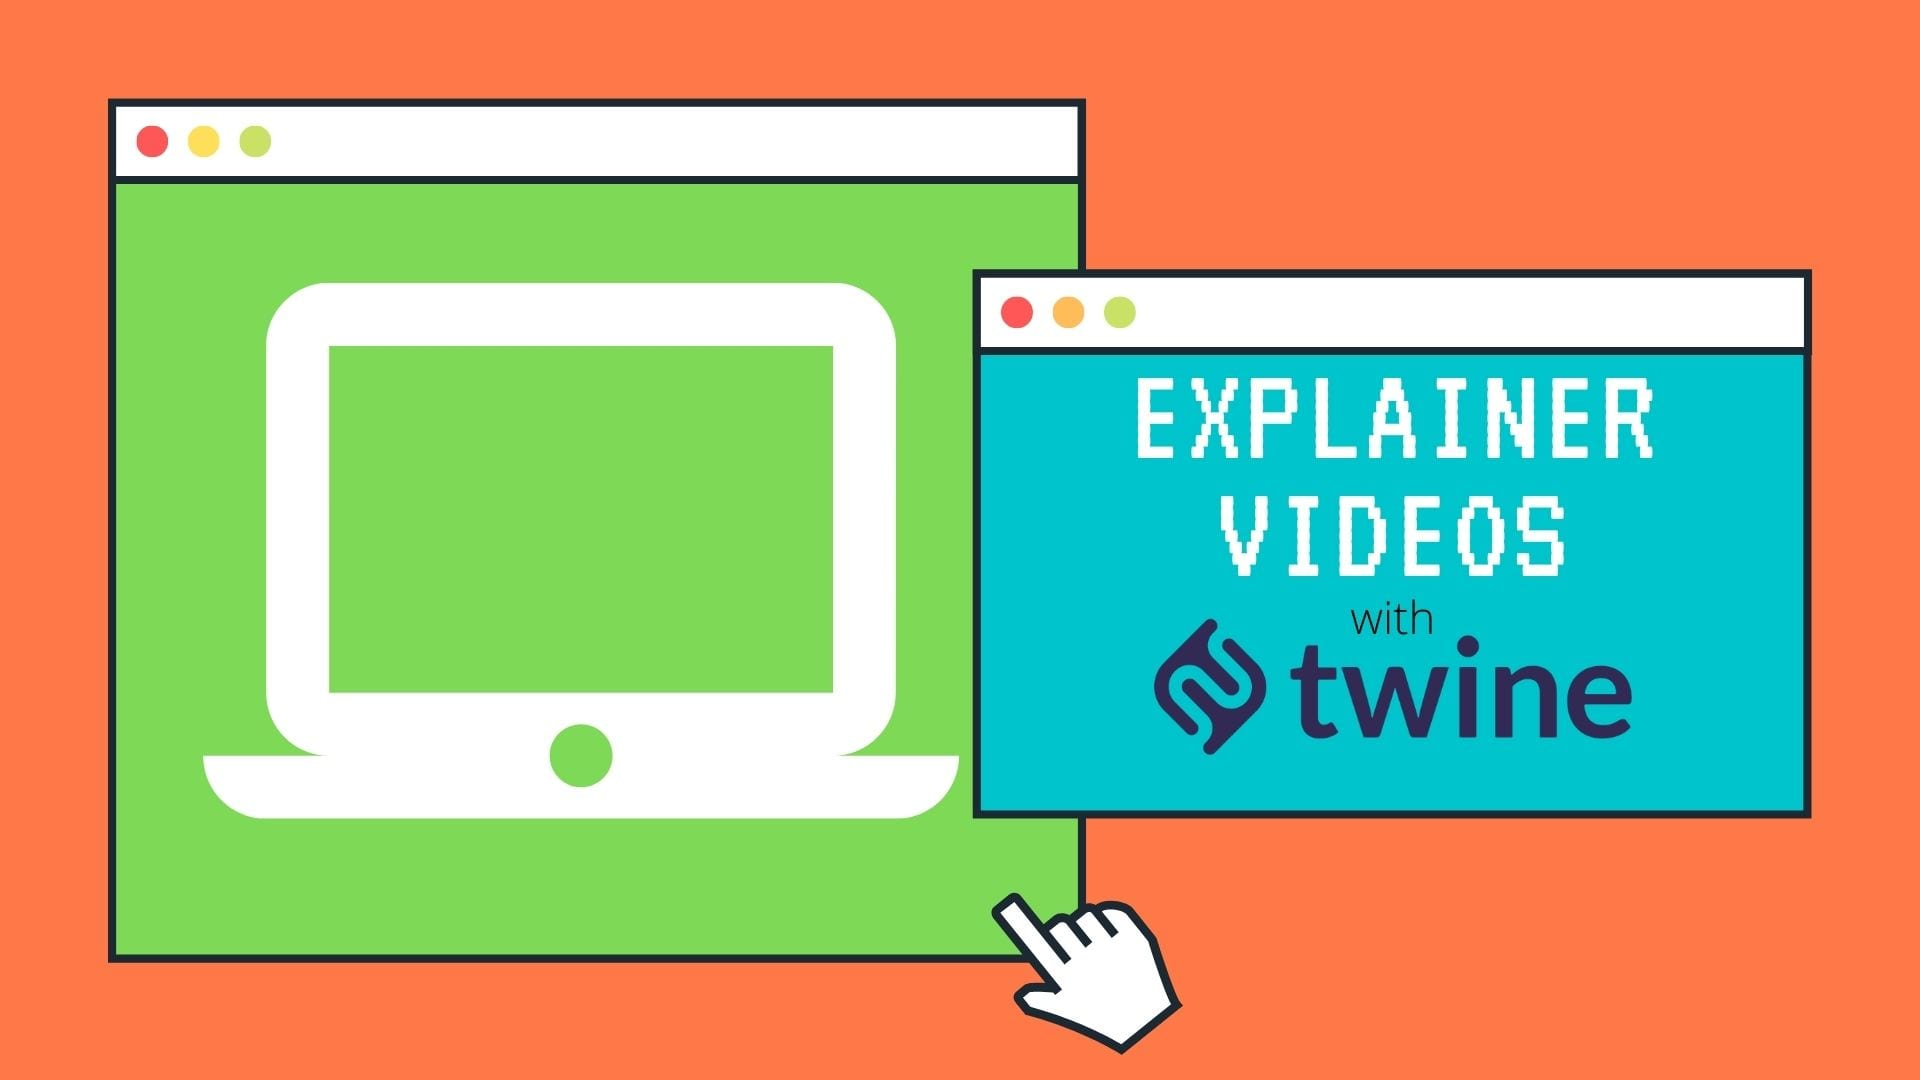 explainer videos with twine